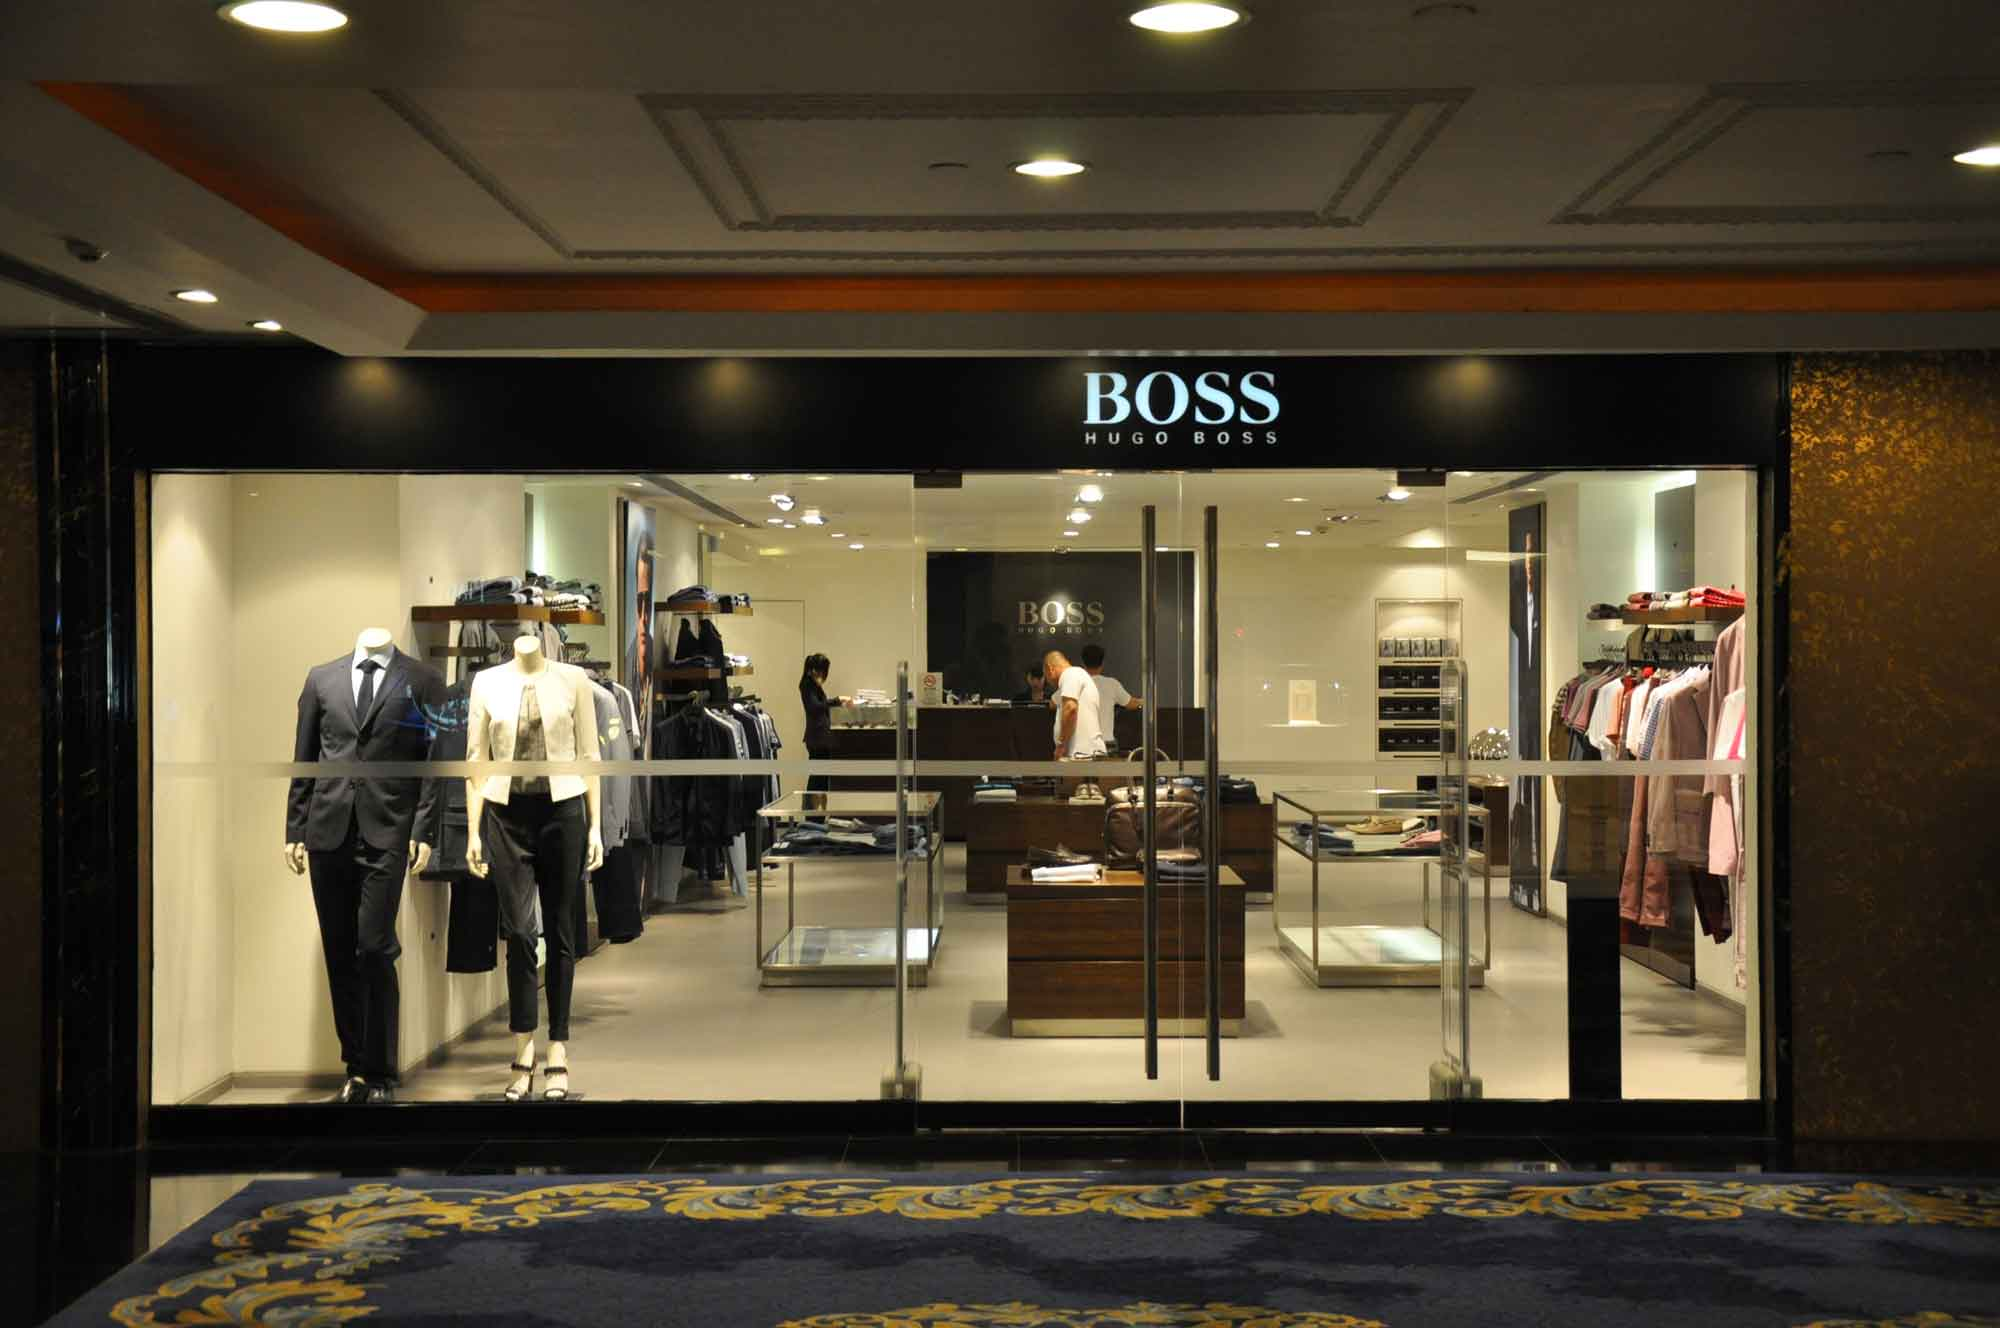 New Orient Landmark Hotel Hugo Boss store